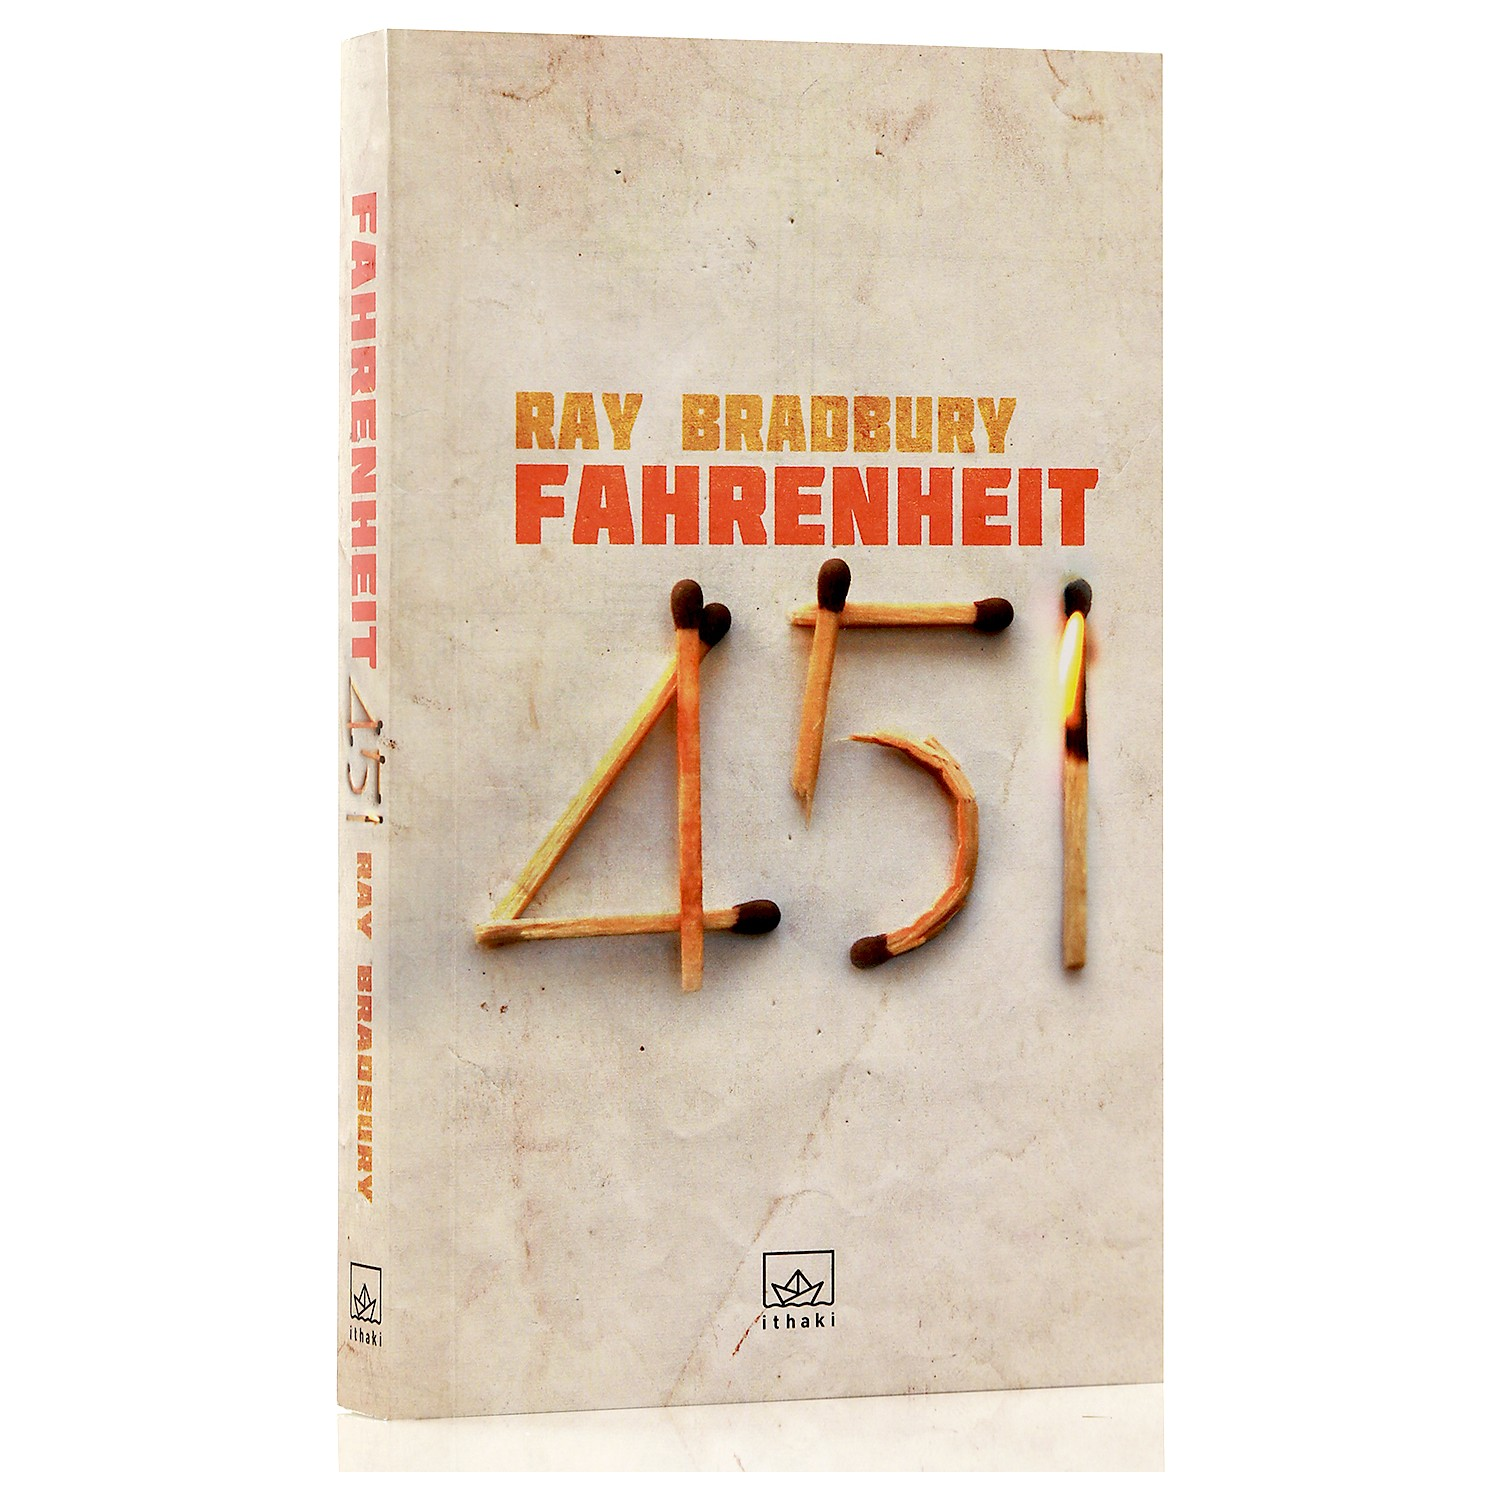 the impact of technology on human interaction in ray bradburys novel fahrenheit 451 Technology was not the main focus of fahrenheit 451, but it did create a world where books were bannedwhen the novel was first published in 1953, technology was nowhere near as advanced as it is today.